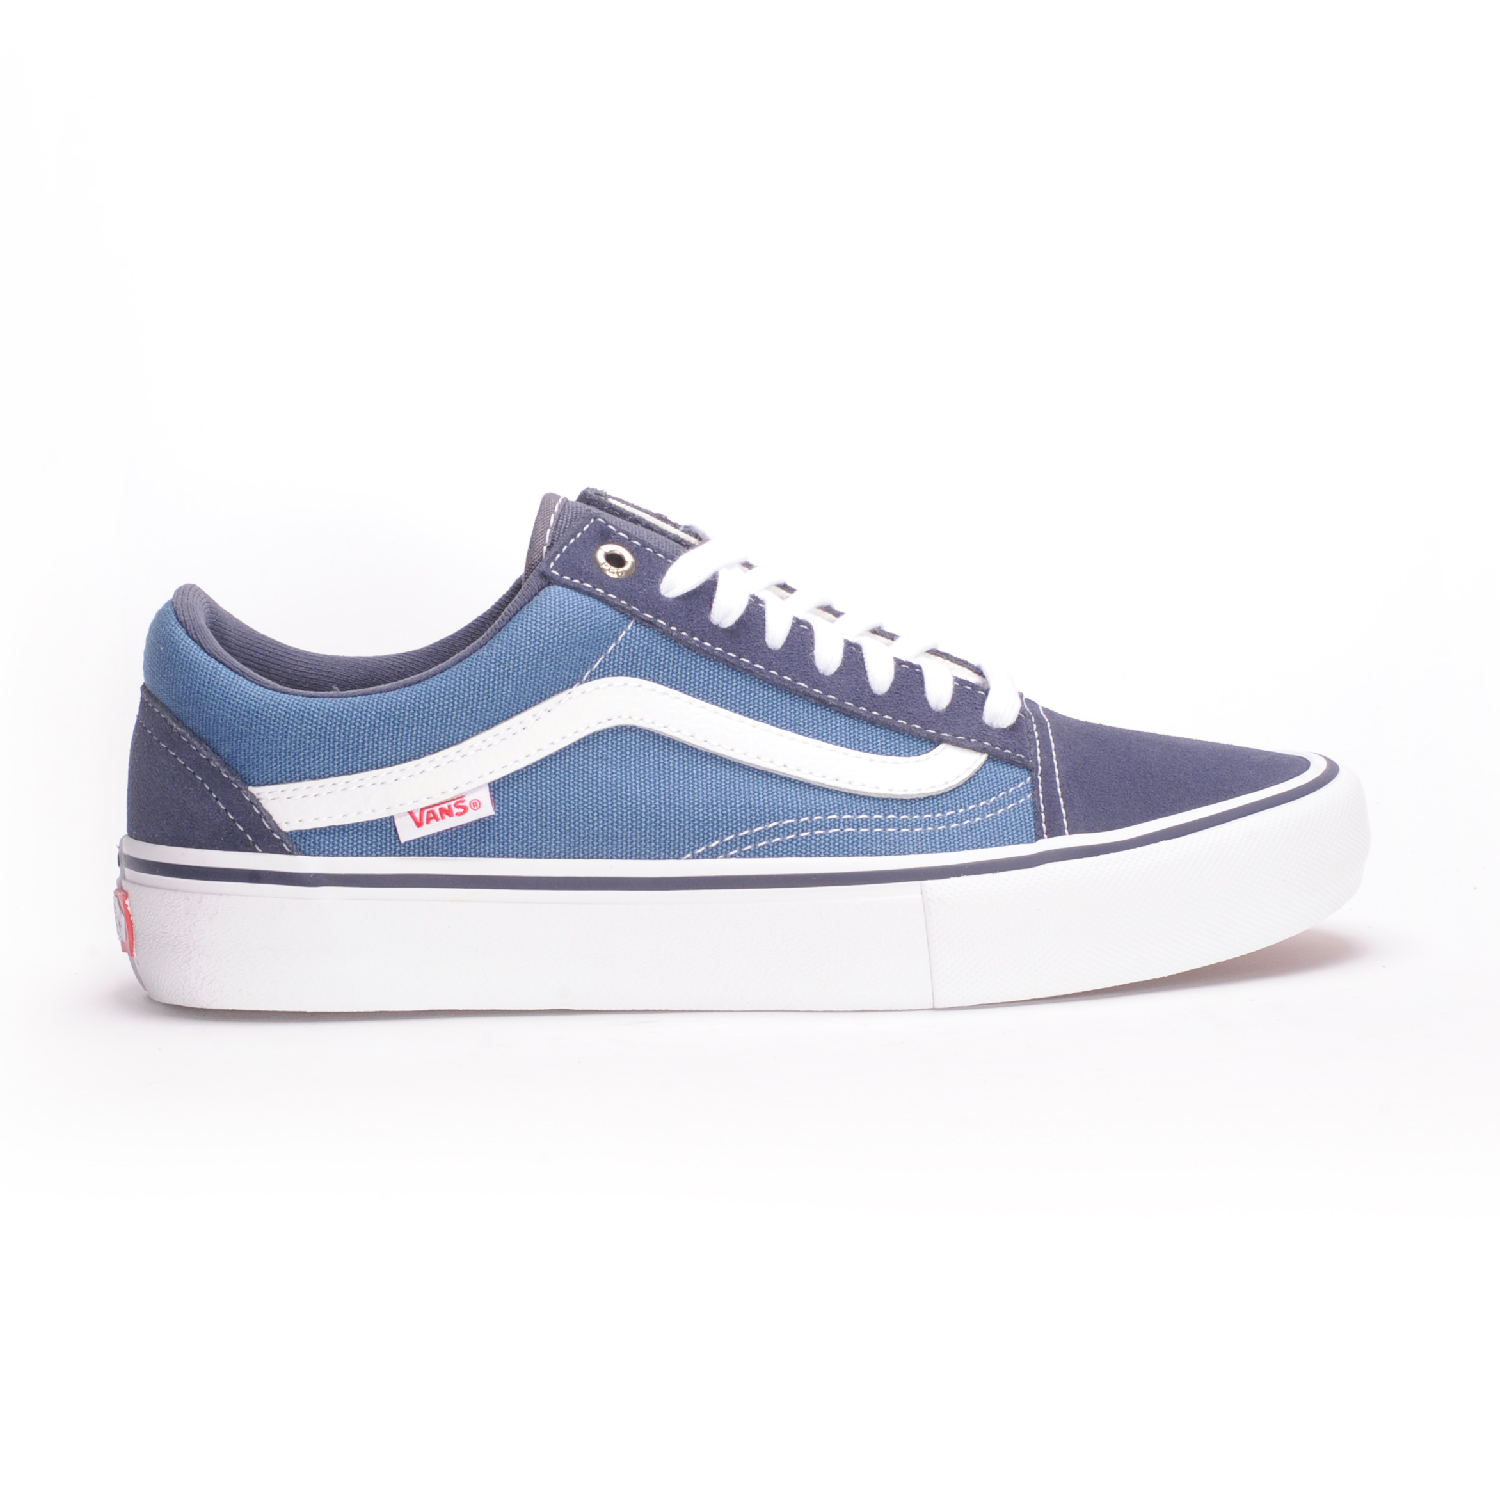 68b68a07ebe1 Vans Old Skool Pro (Navy STV Navy White) Men s Skate Shoes